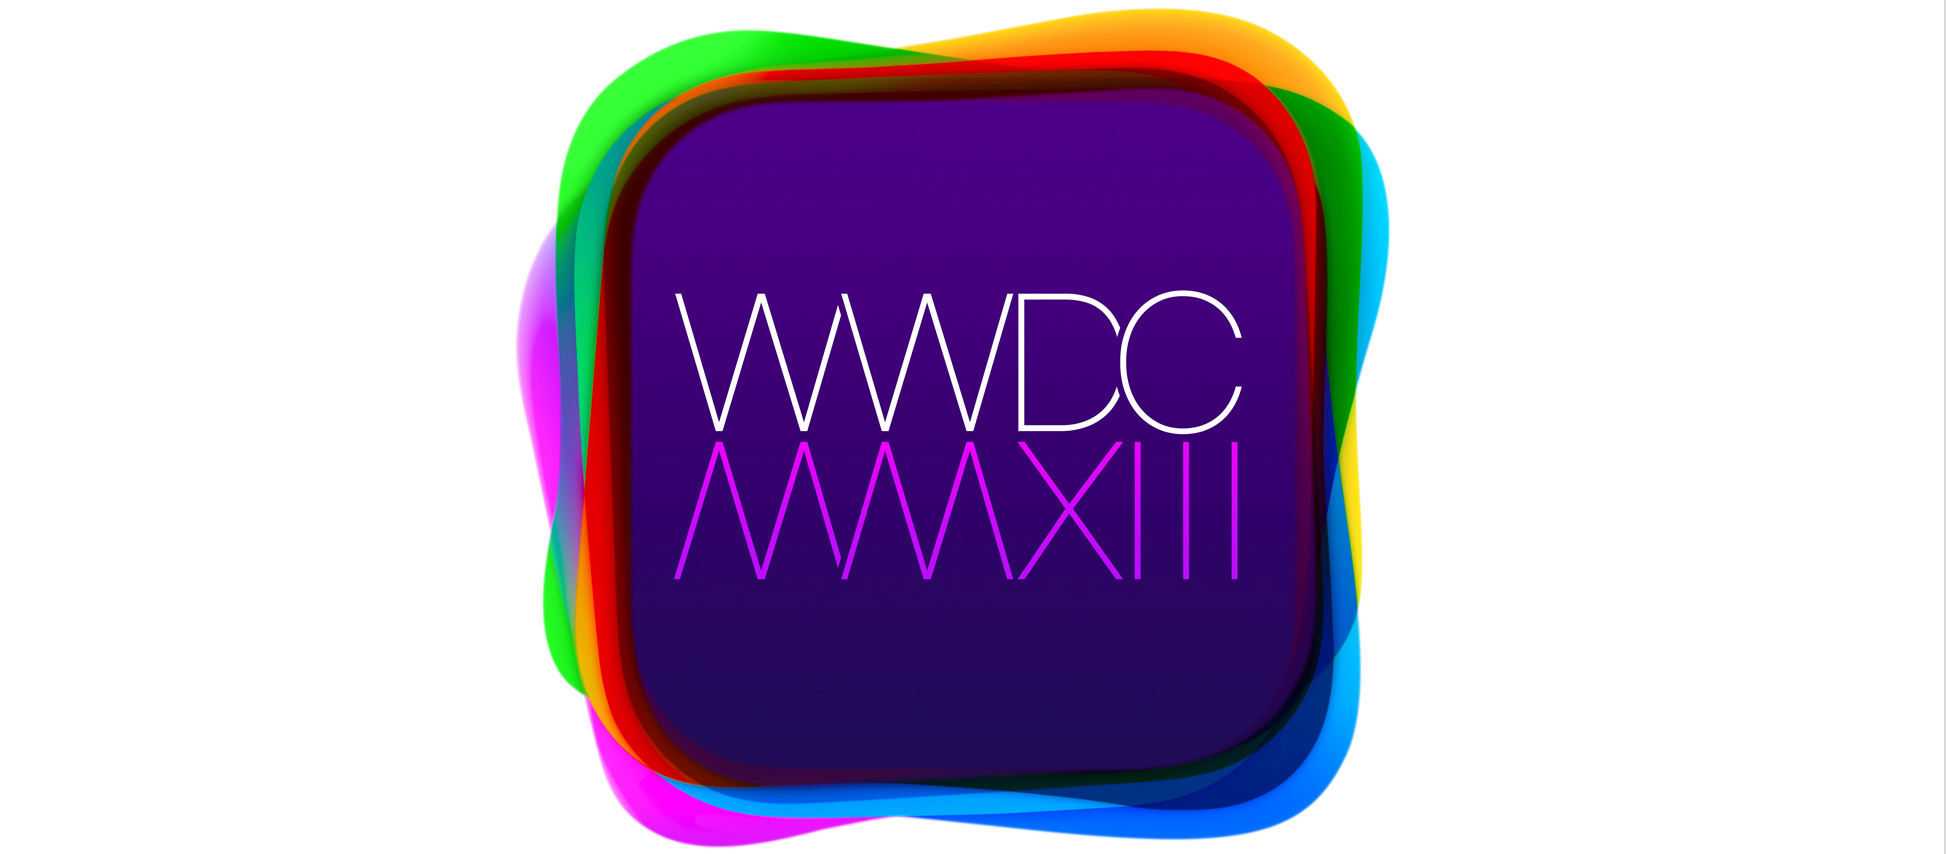 Hopes for WWDC 2013